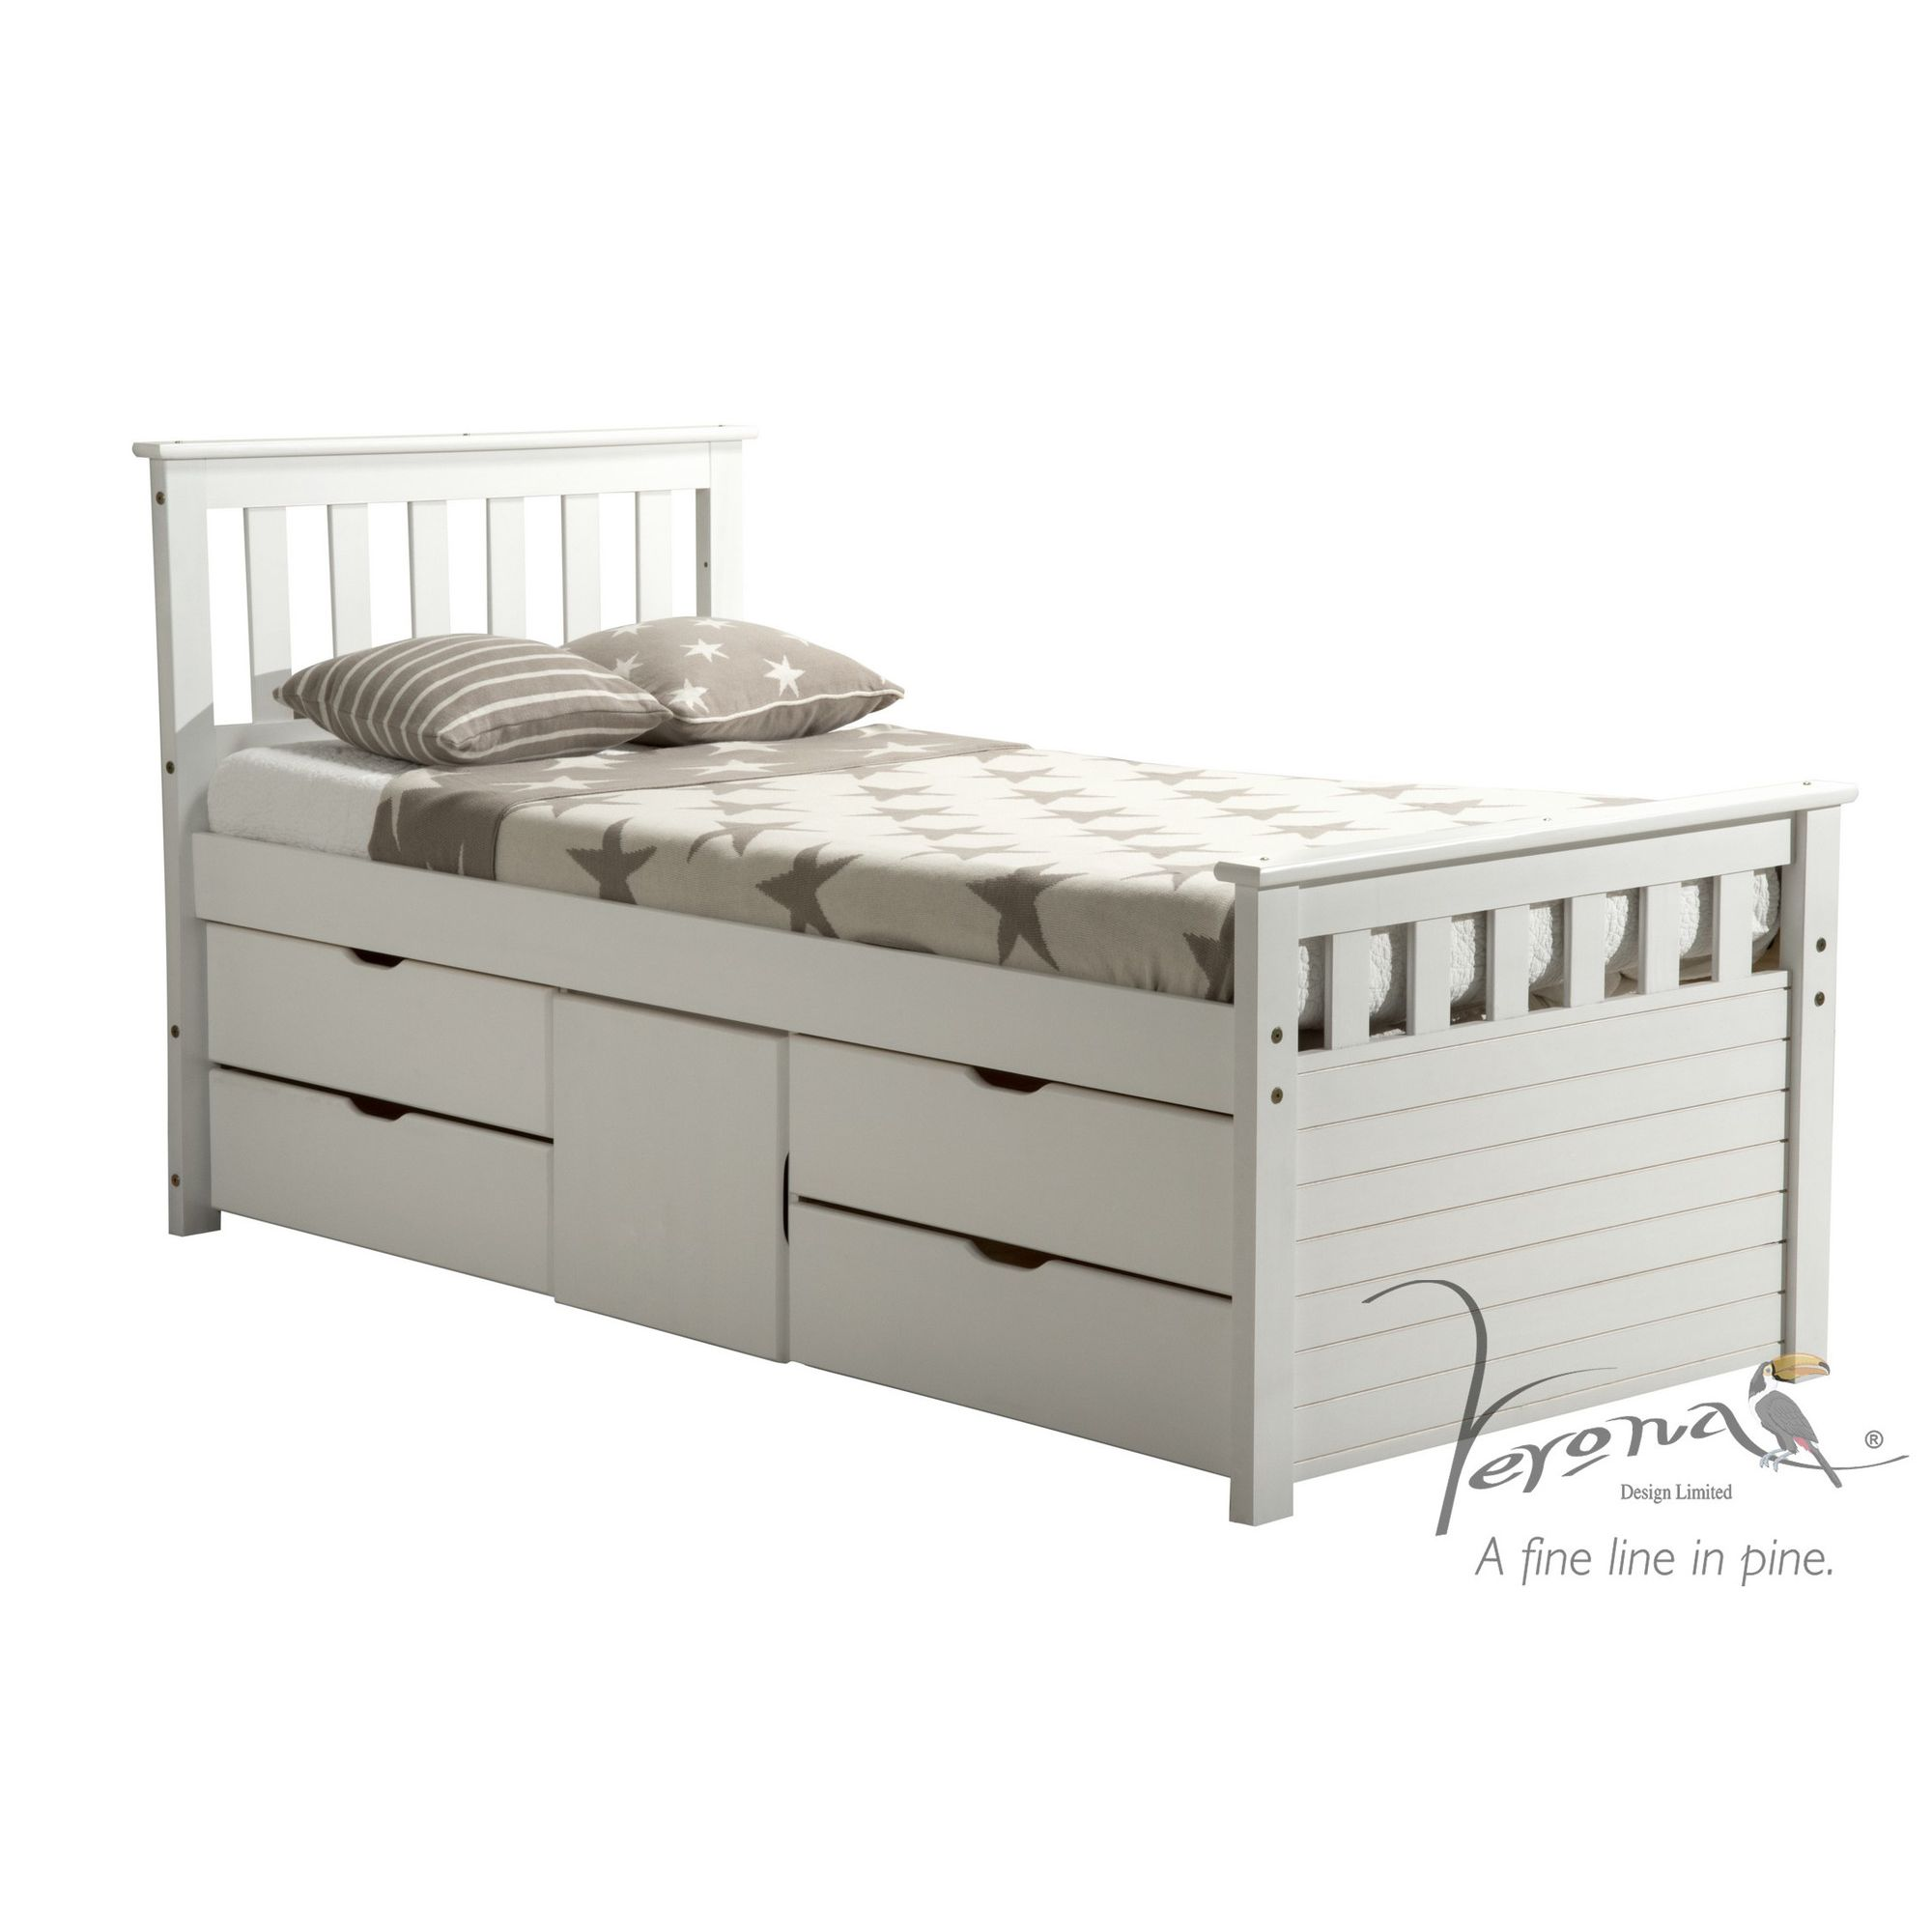 Verona Ferrara Captains Bed - One Side - Single - Whitewash at Tesco Direct